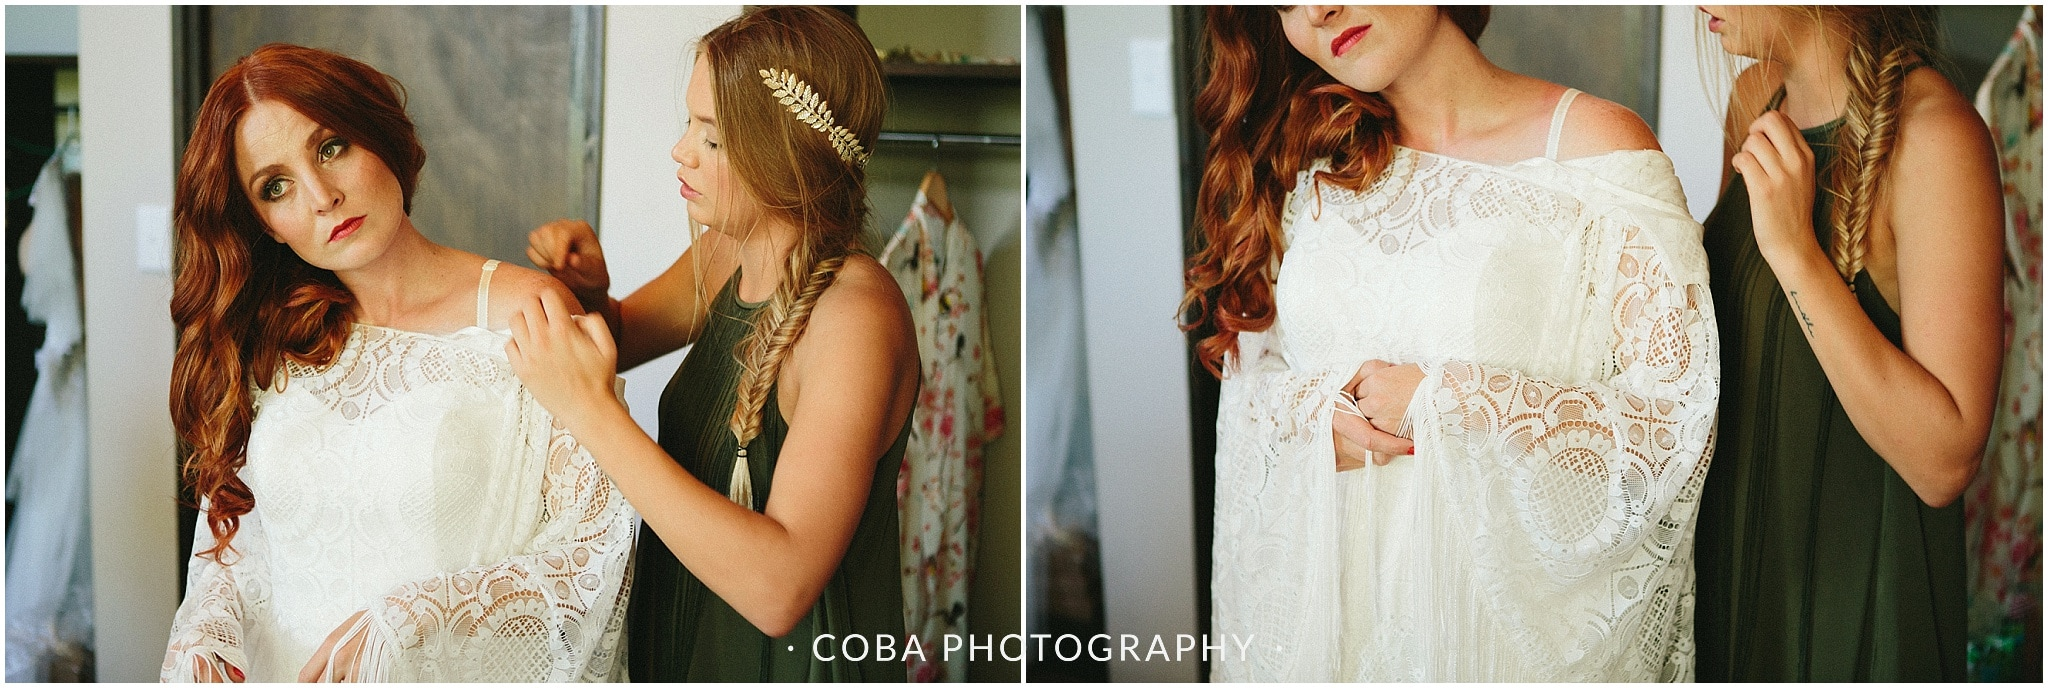 Conrad & Mareli - boho beach wedding habonim - coba photography (23)